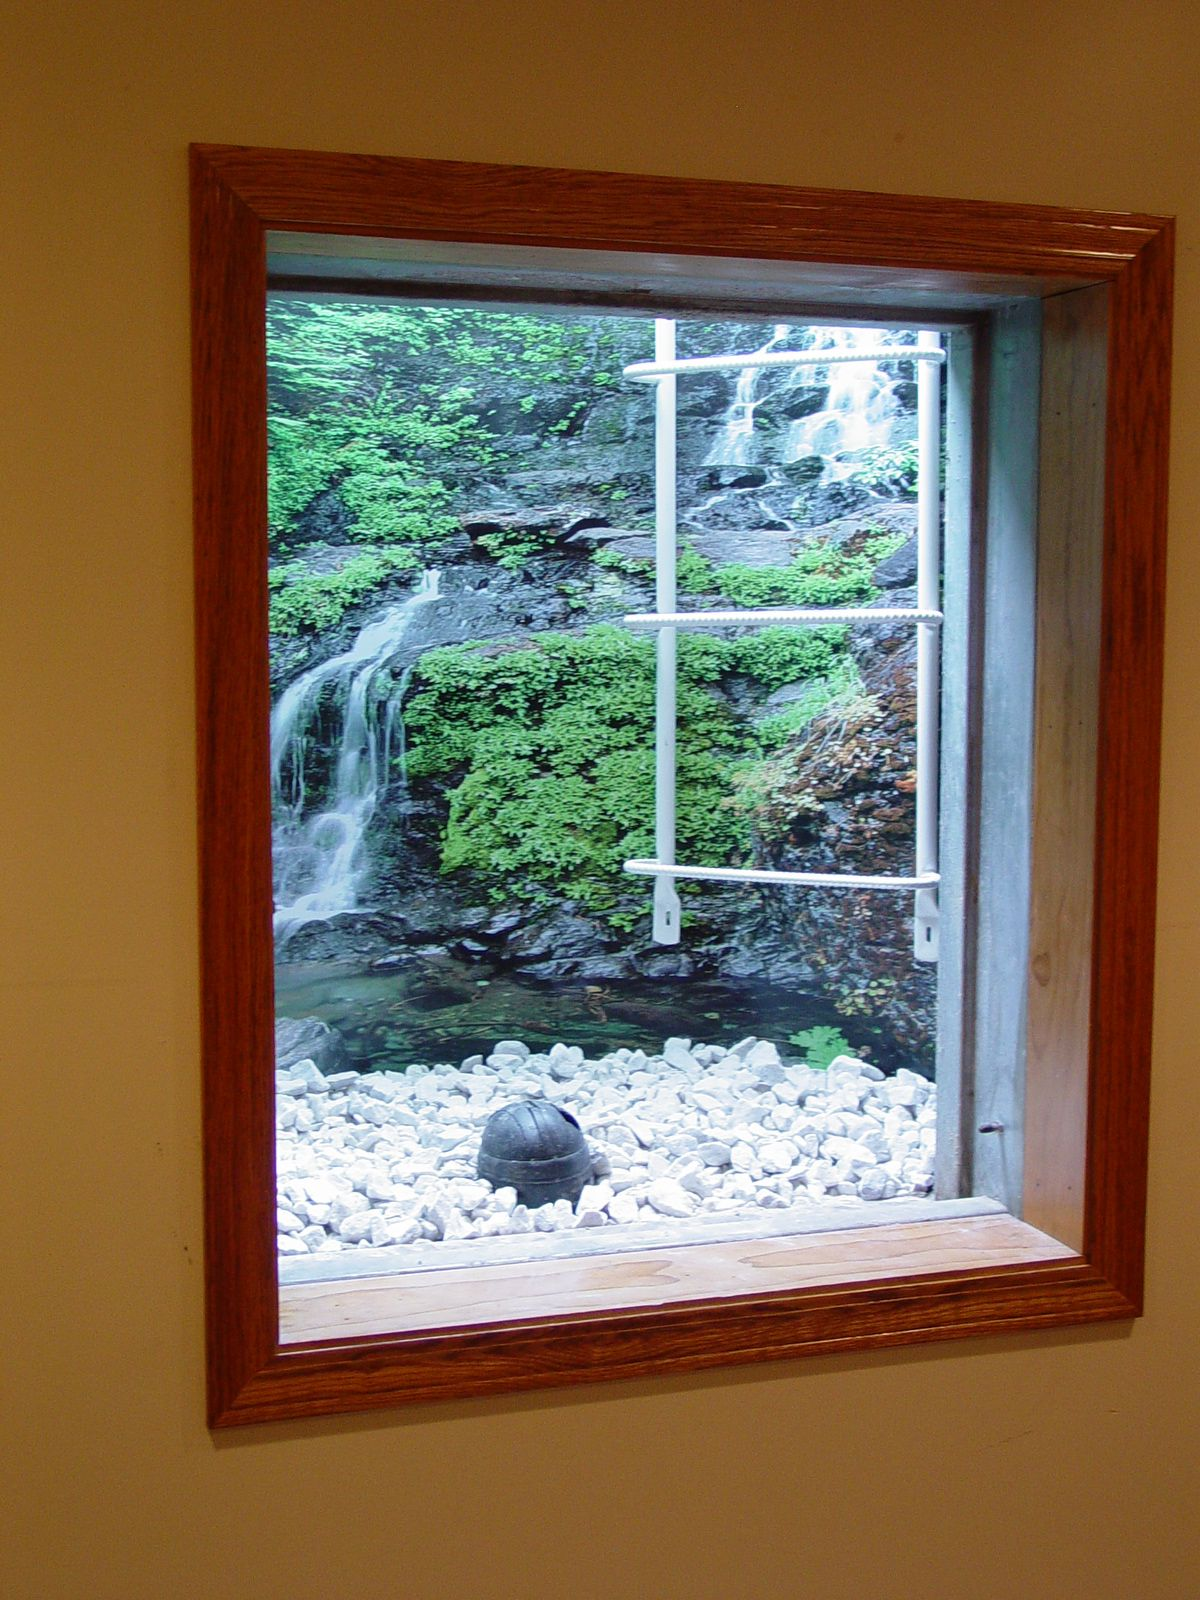 Creative Designs Of Basement Window Covers For Your Diy Project Basement Windows Window Well Basement Window Well